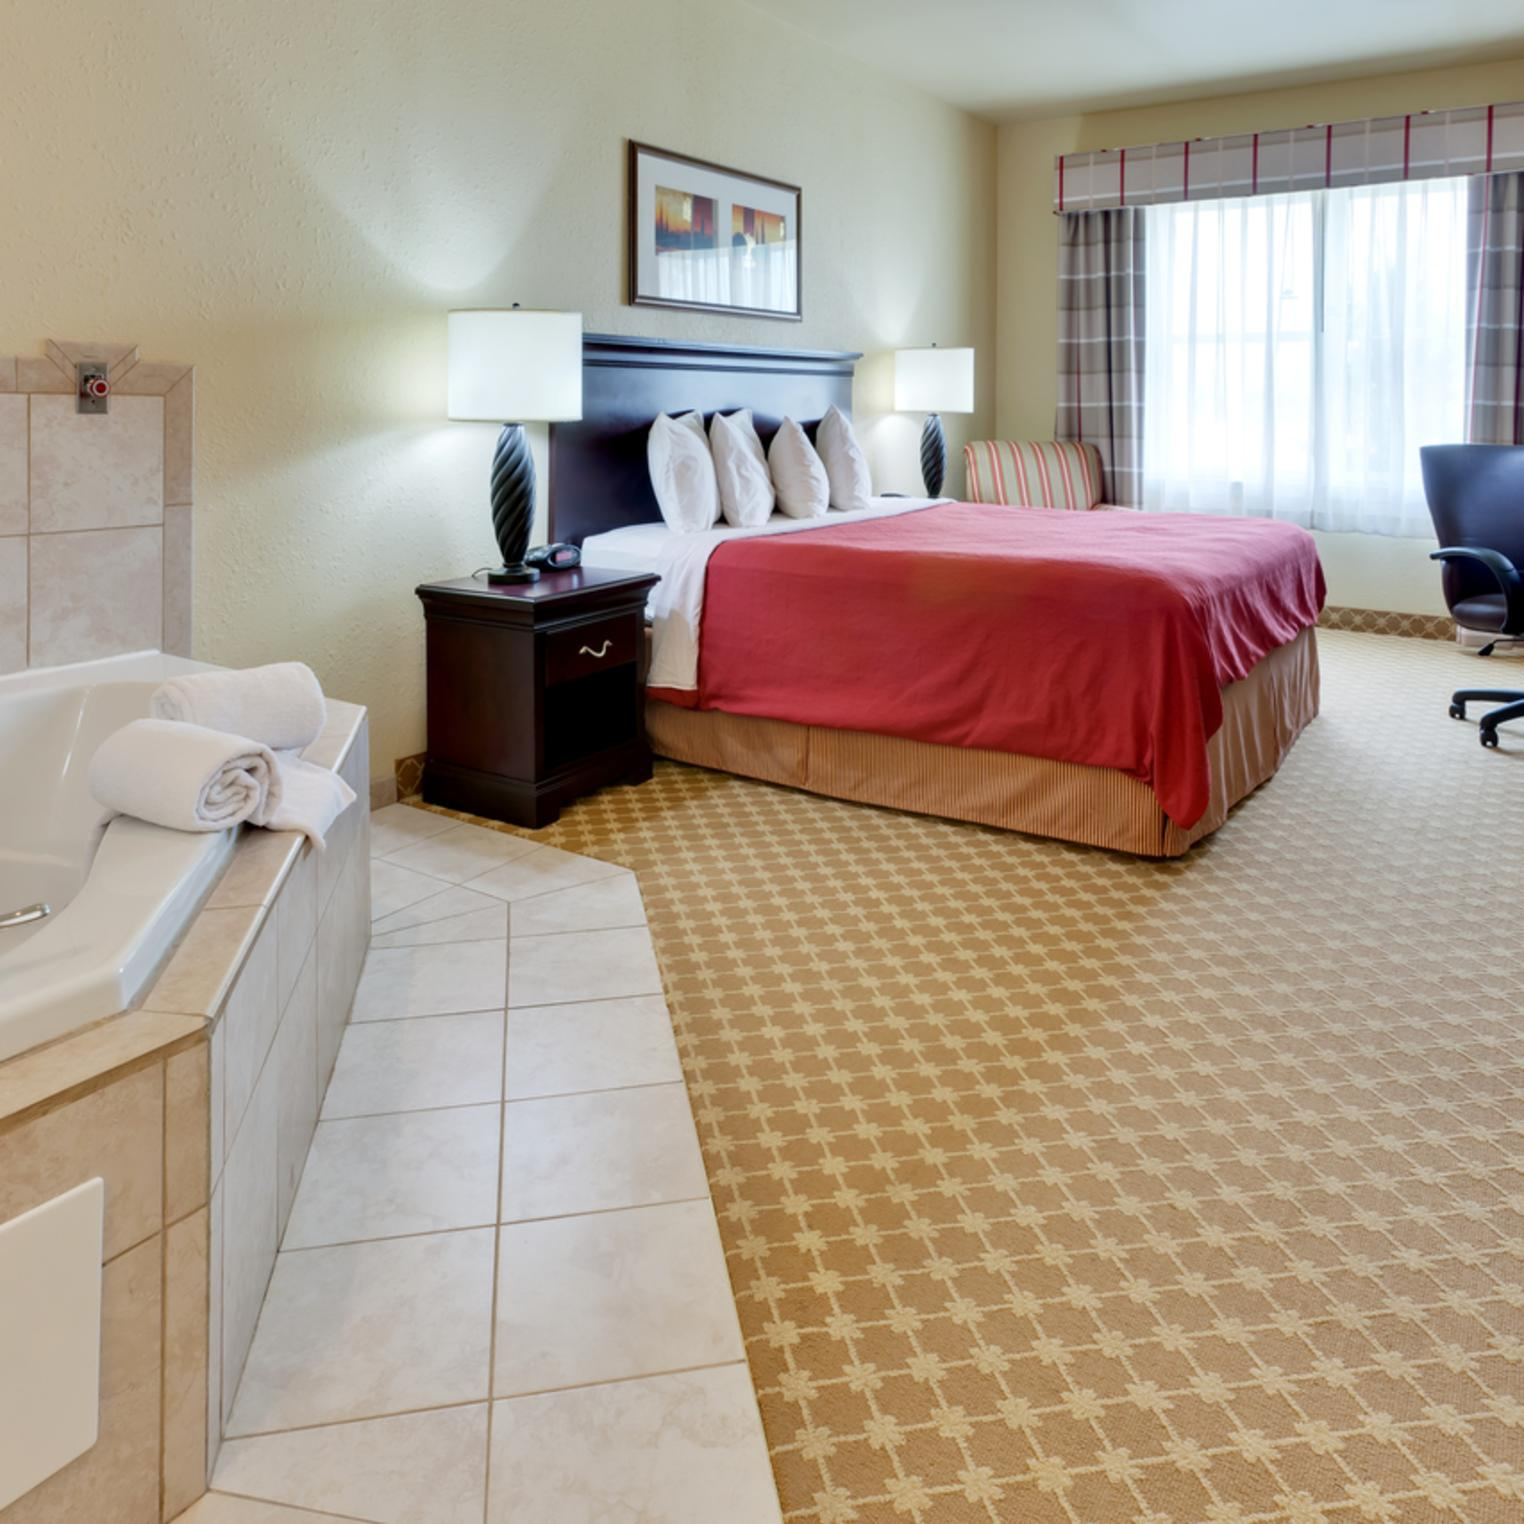 Country Inn and Suites Whirlpool Suite